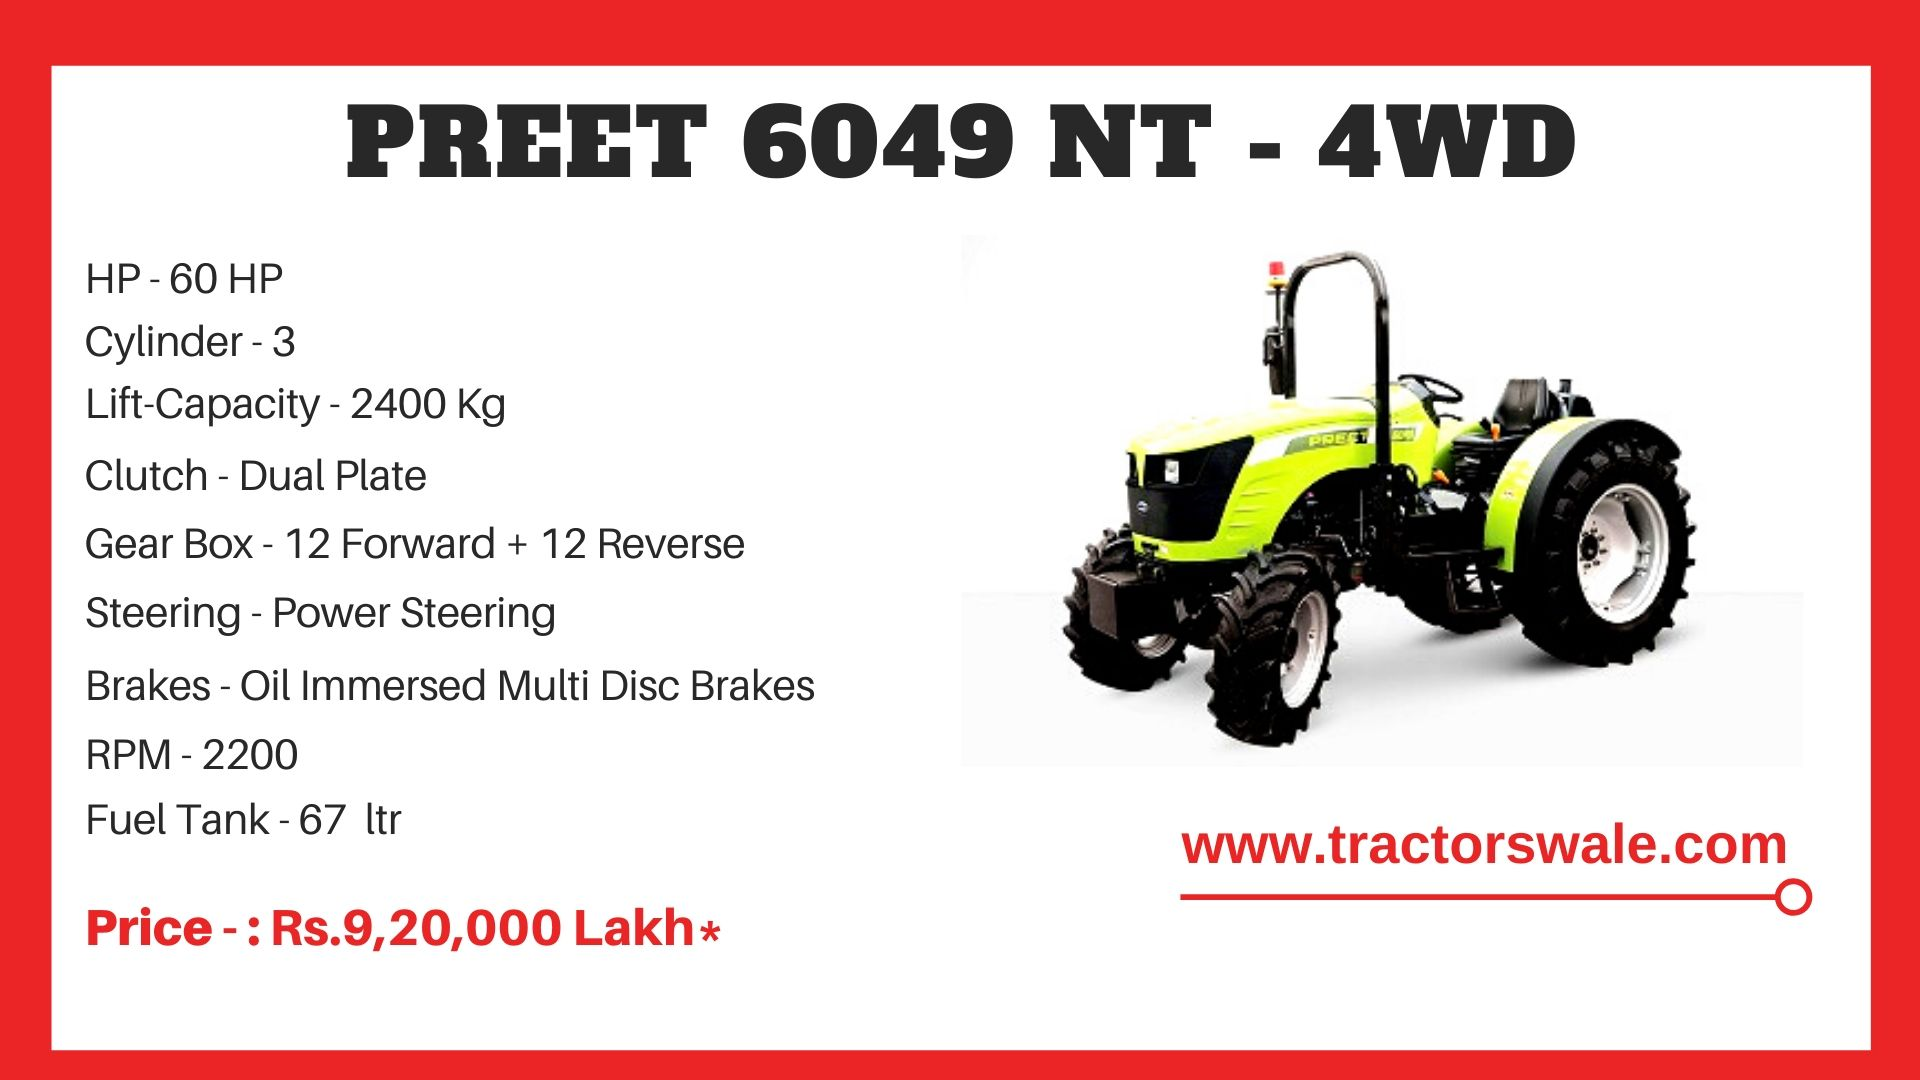 Preet 6049 NT 4WD tractor price